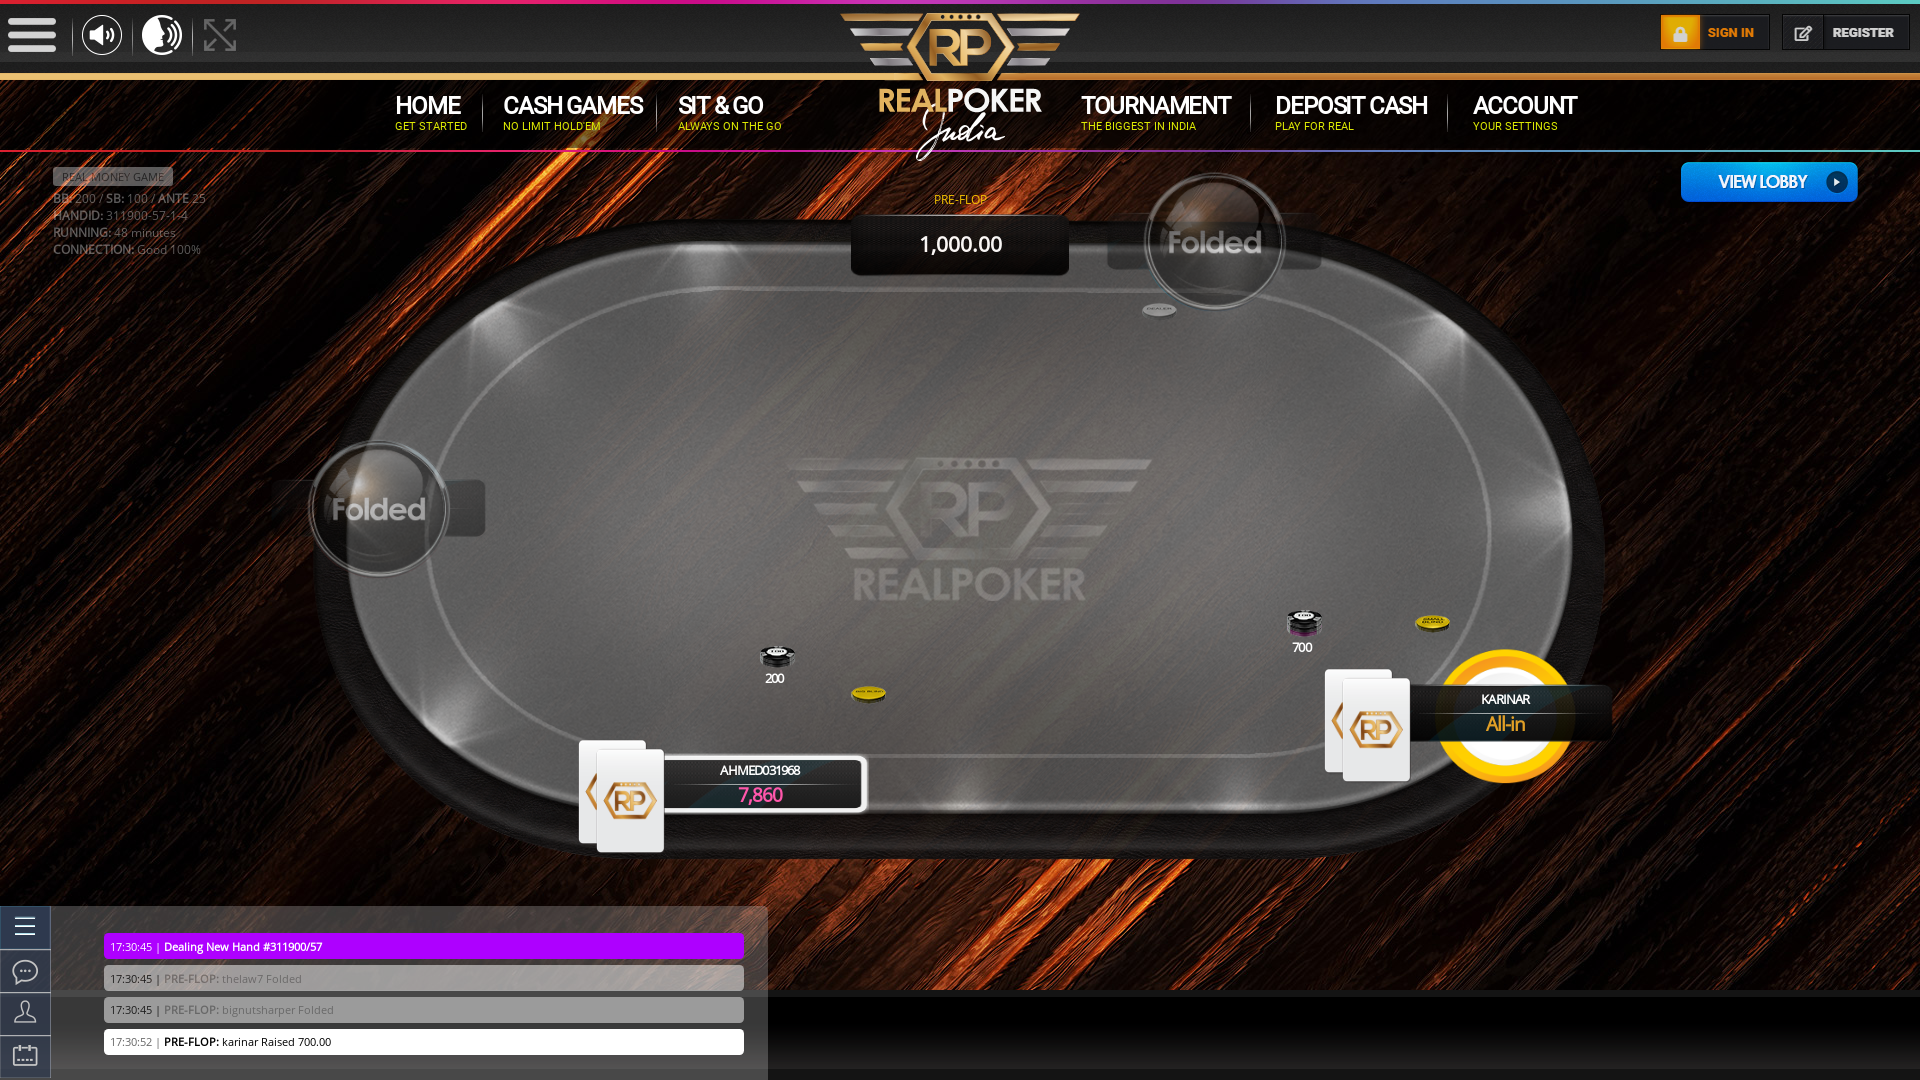 Mathikere, Bangalore online poker game on a 10 player table in the 48th minute